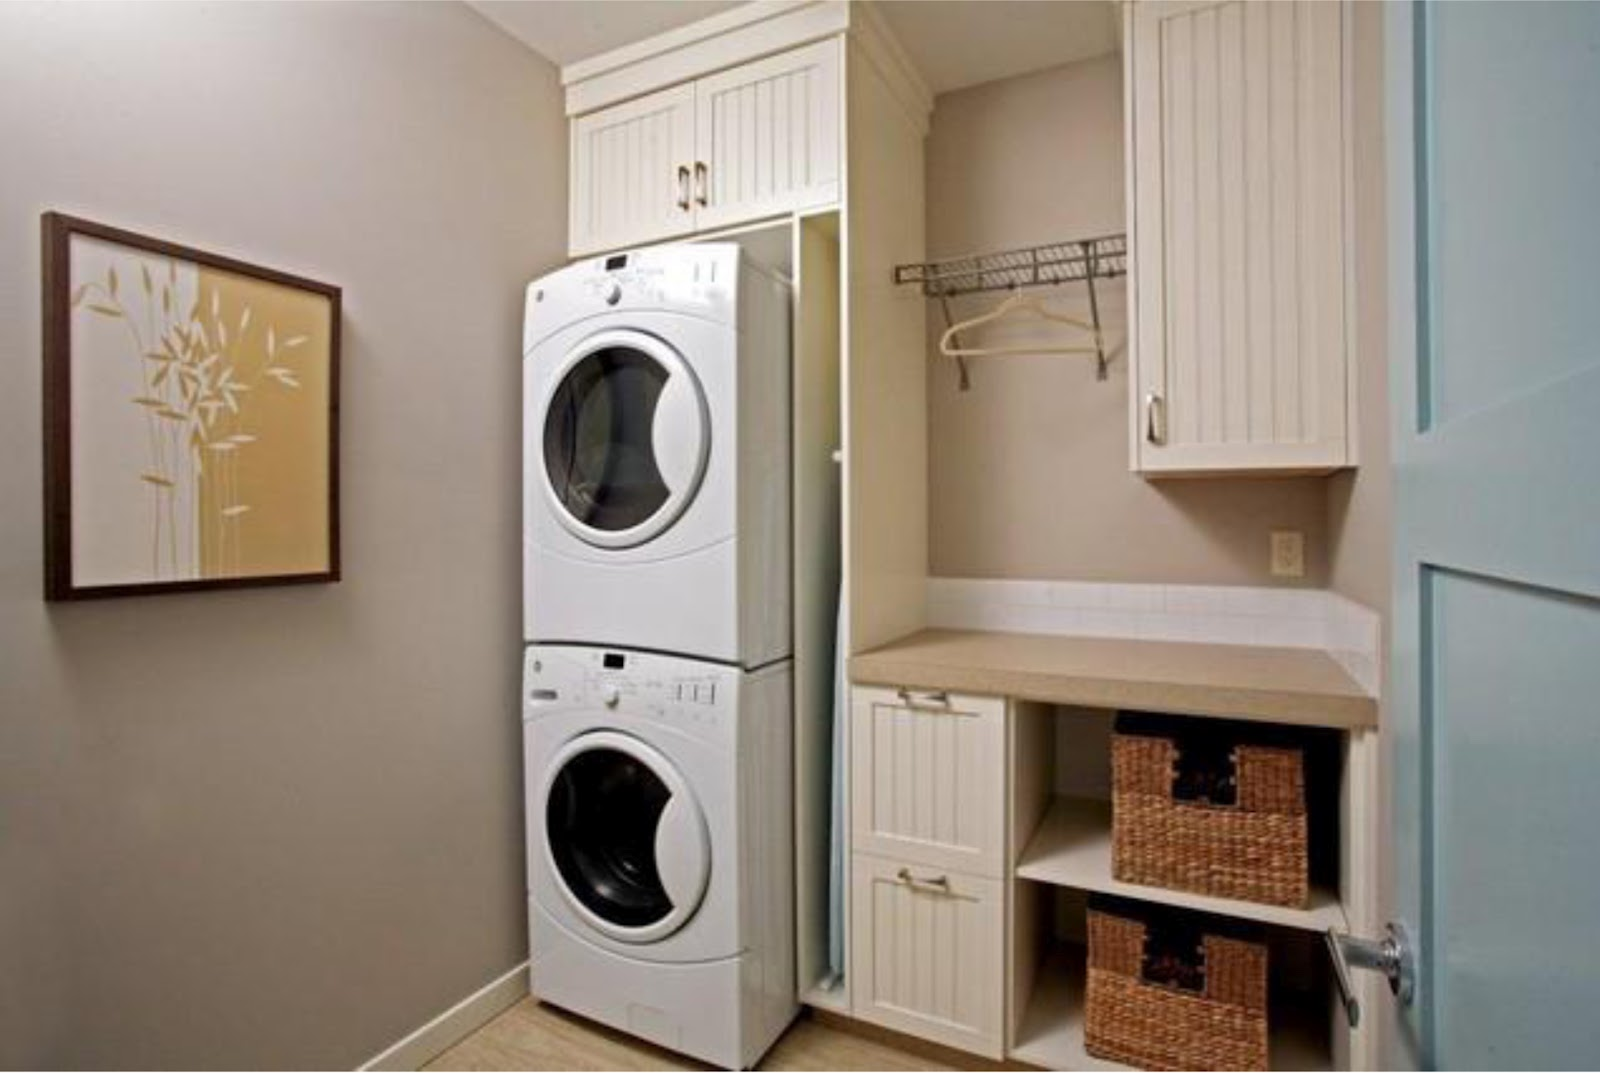 Simplifying remodeling july 2012 - Laundry room designs small spaces set ...